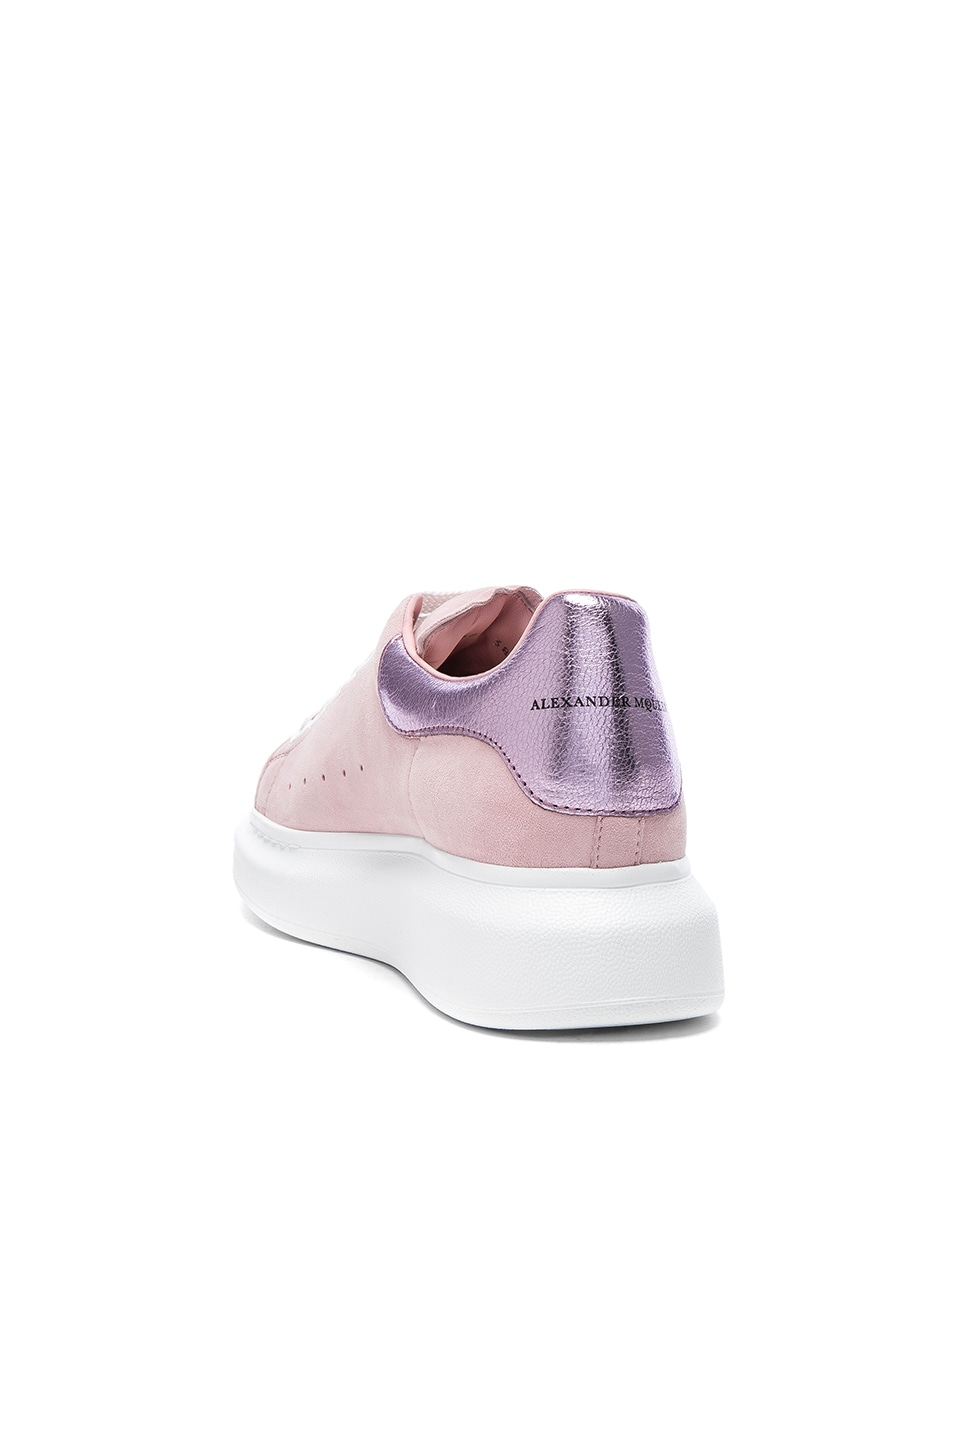 Image 3 of Alexander McQueen Suede Platform Lace Up Sneakers in Clover & Pale Pink